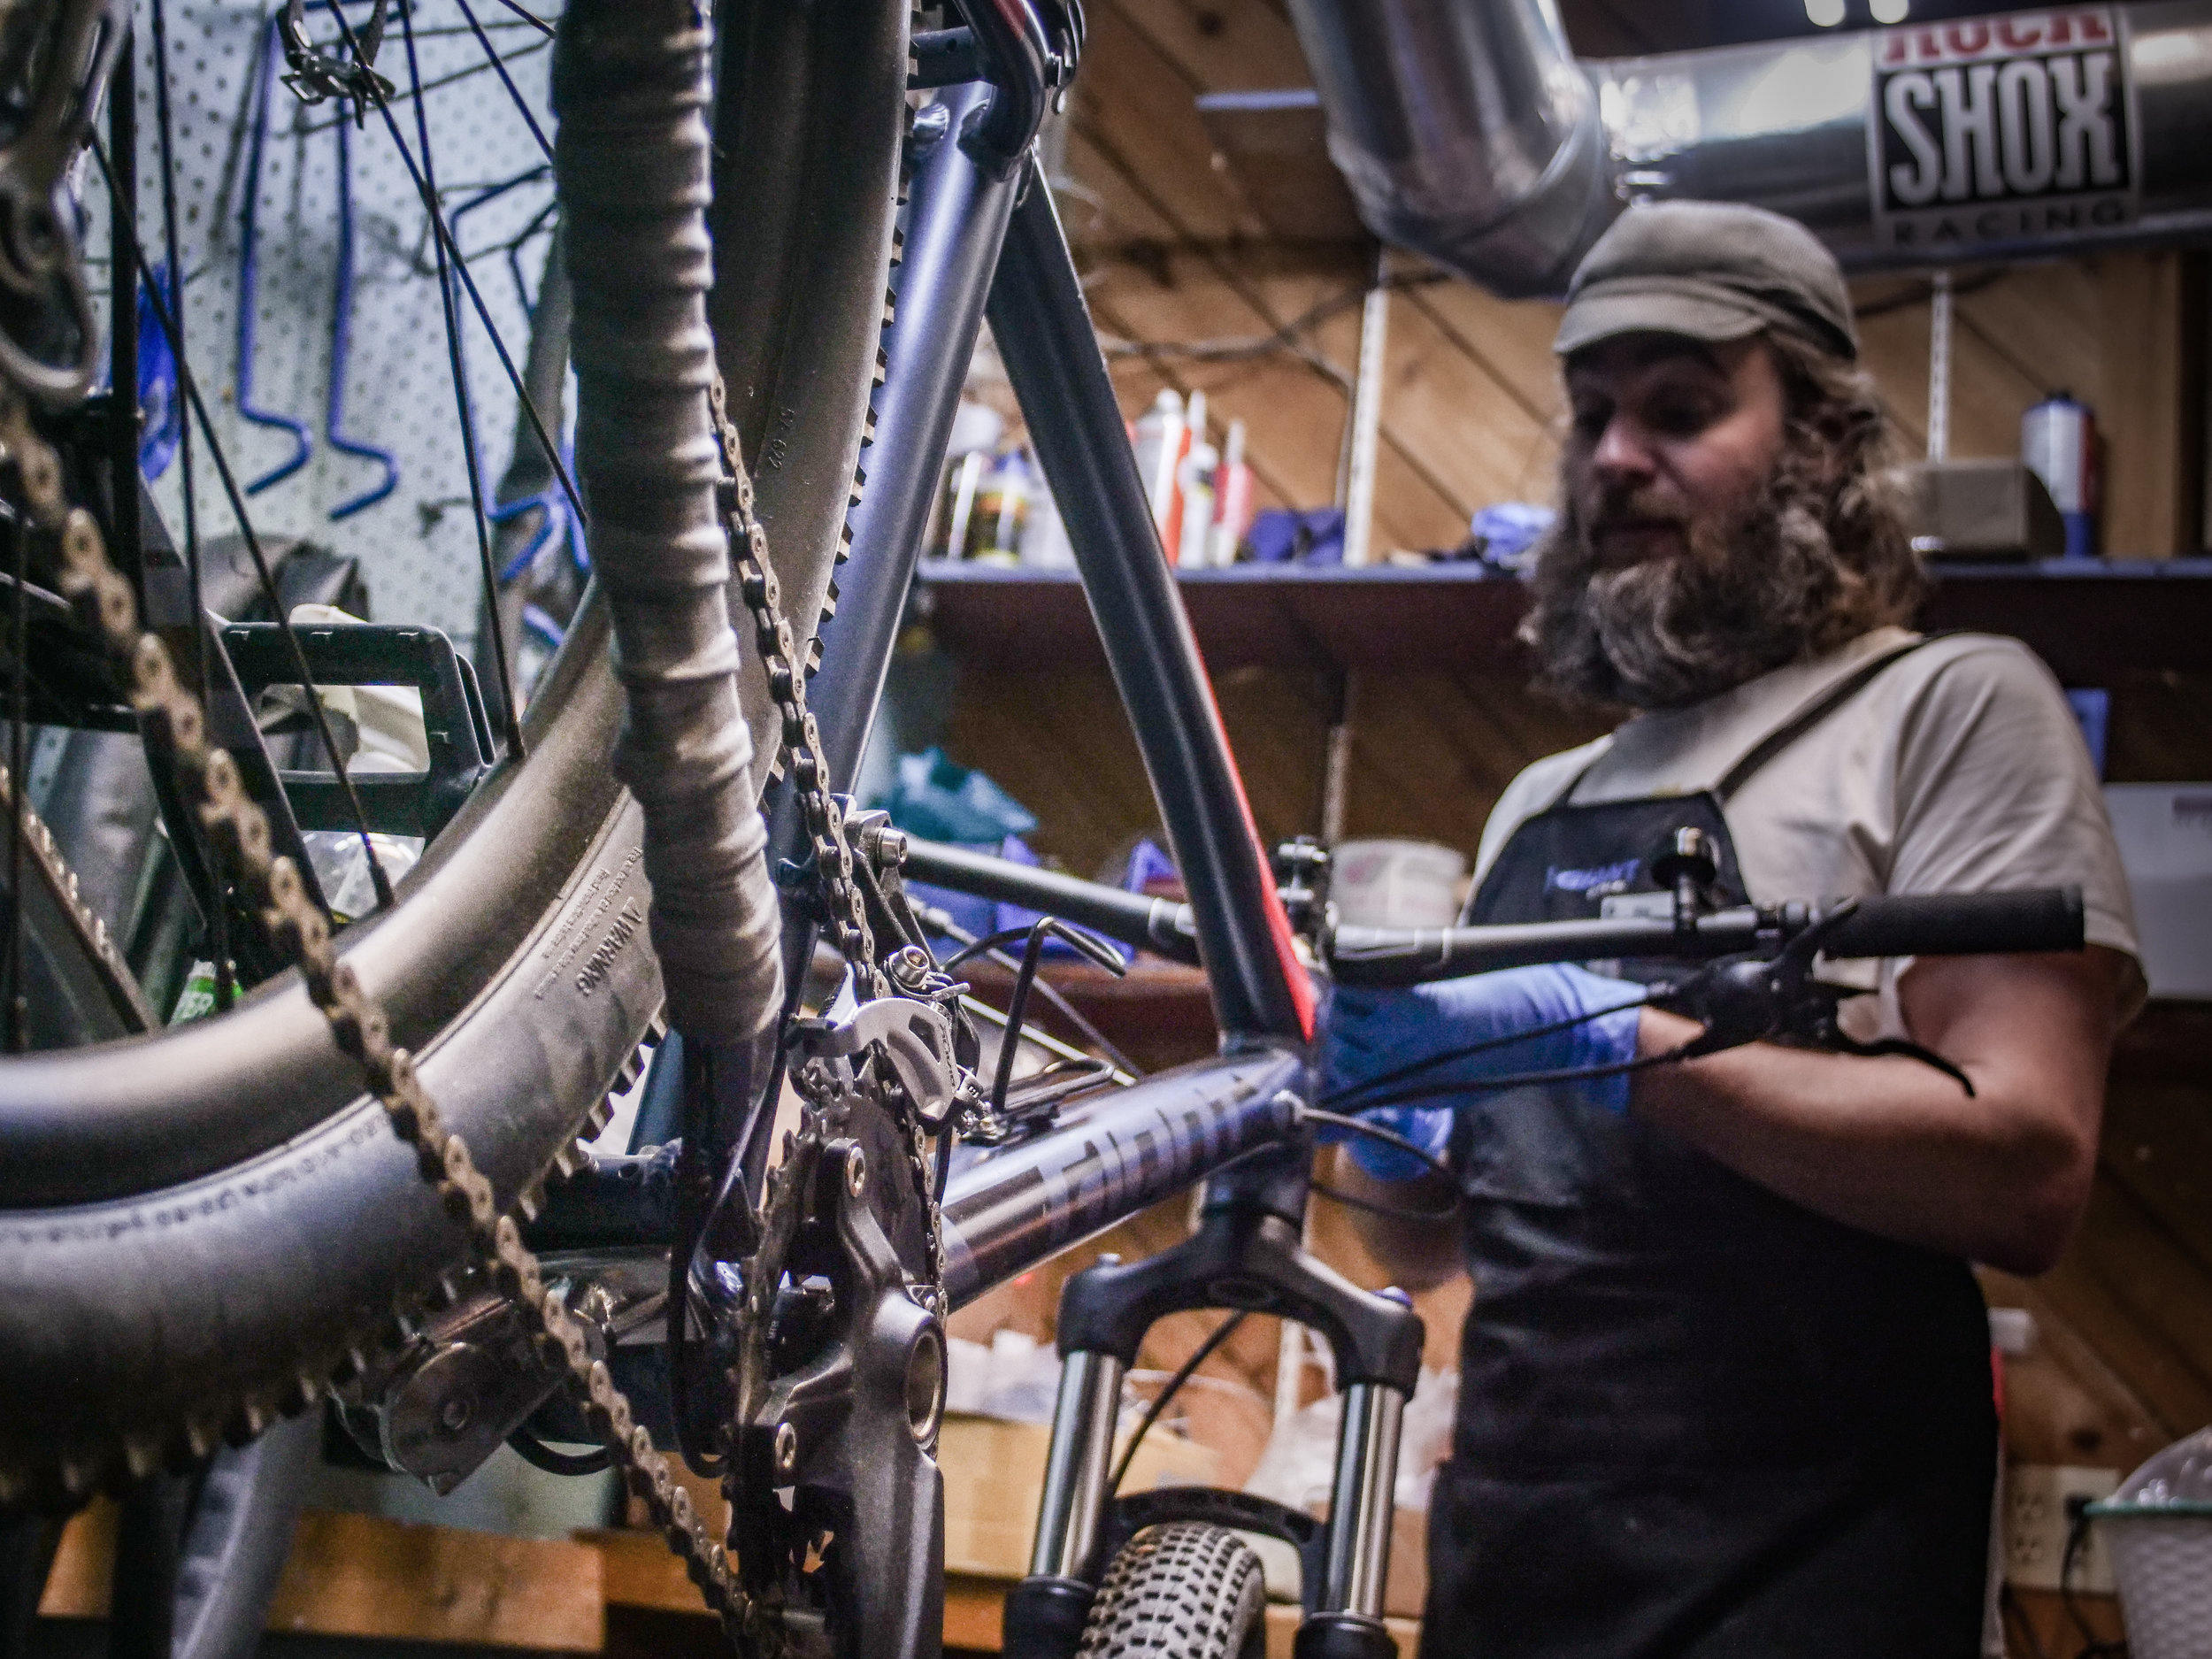 Get your bikes tuned at the Adventure Center